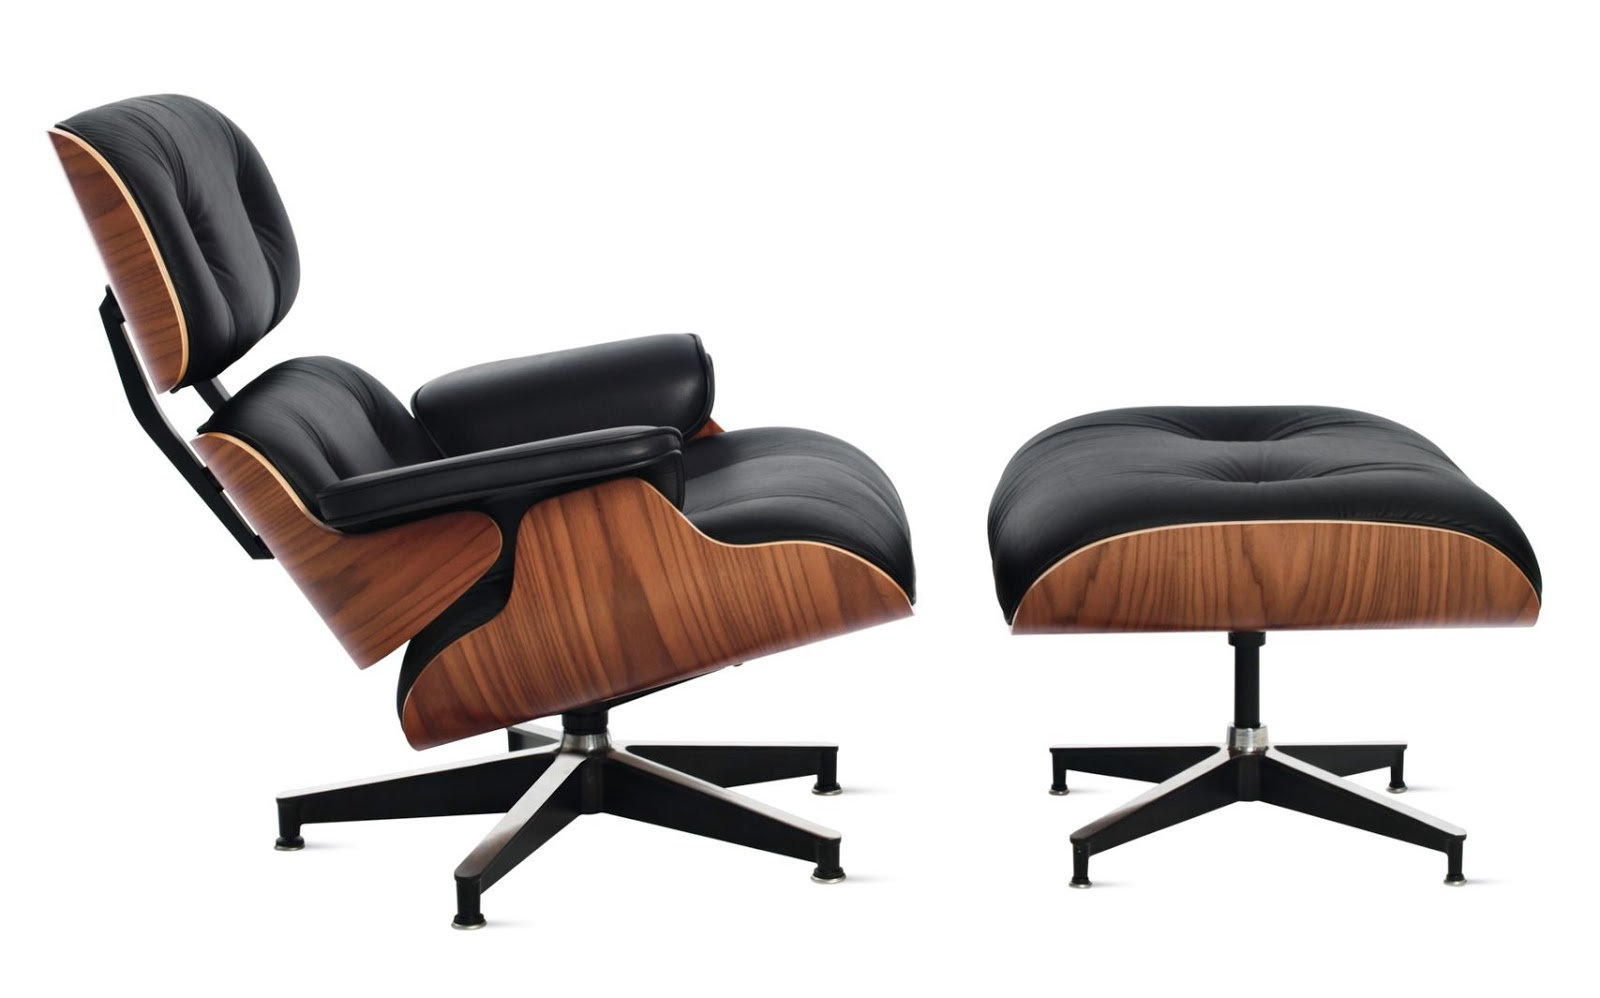 Chairs design within reach - The Iconic Eames Chair And Ottoman A Classic Offering From Design Within Reach